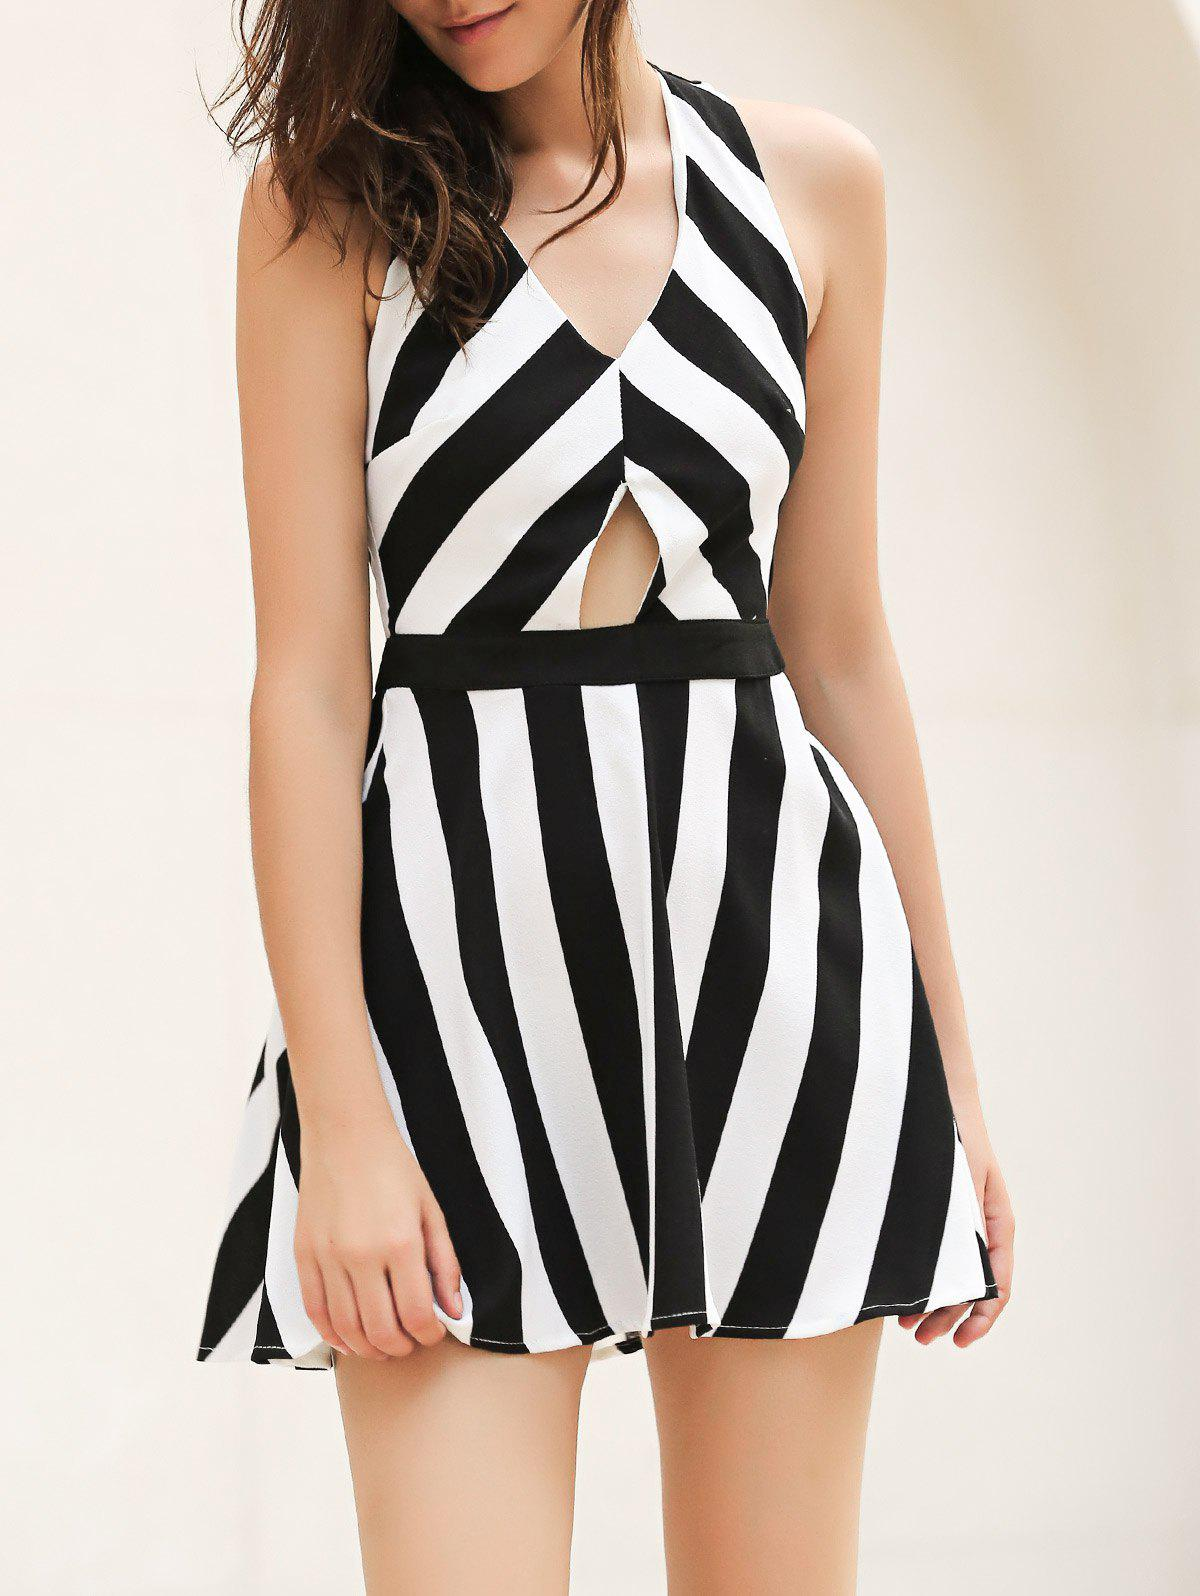 Discount Vintage Striped Hollow Out Mini Dress